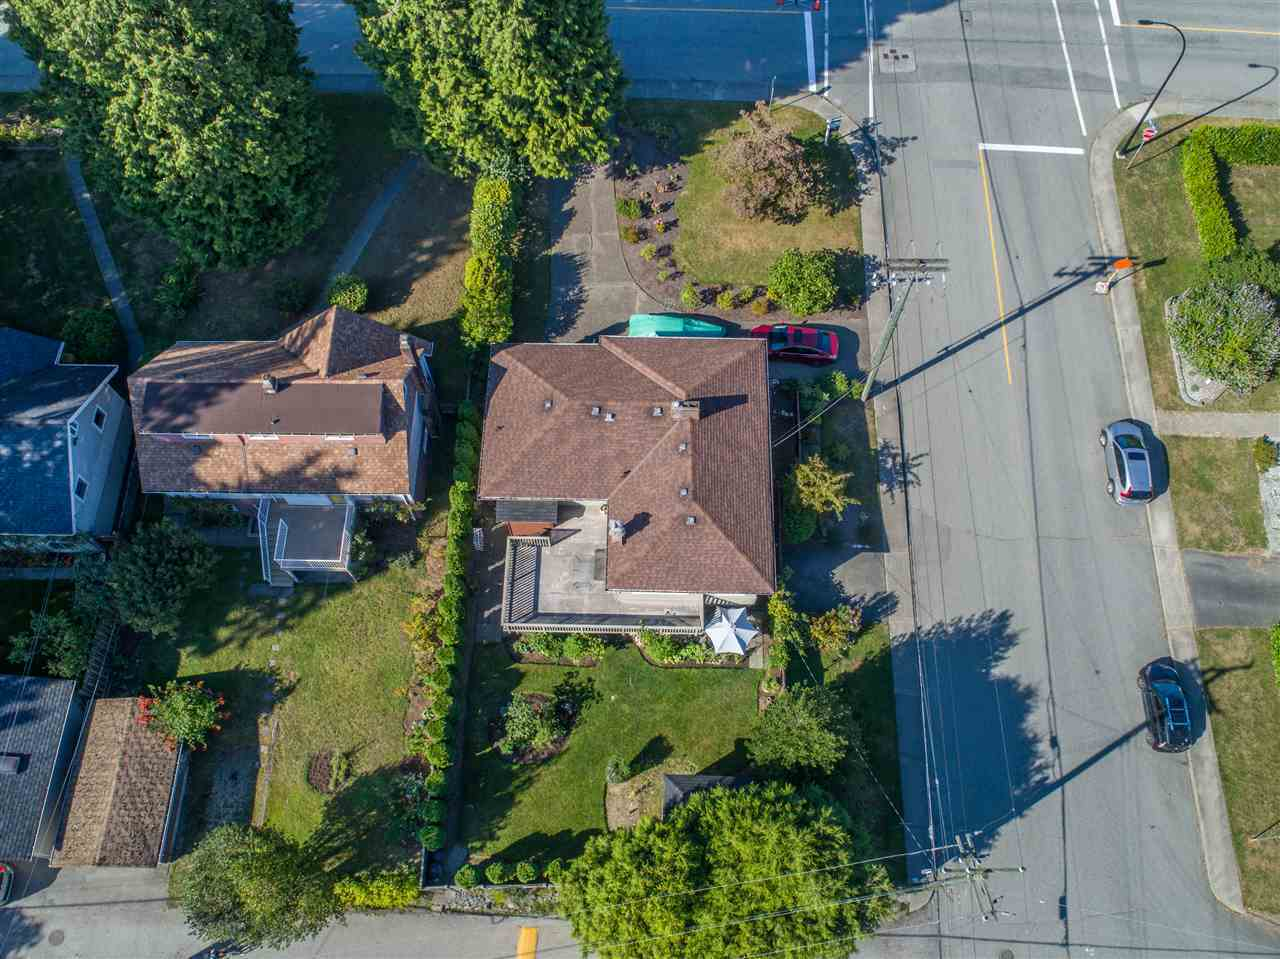 265-e-23rd-street-central-lonsdale-north-vancouver-21 at 265 E 23rd Street, Central Lonsdale, North Vancouver